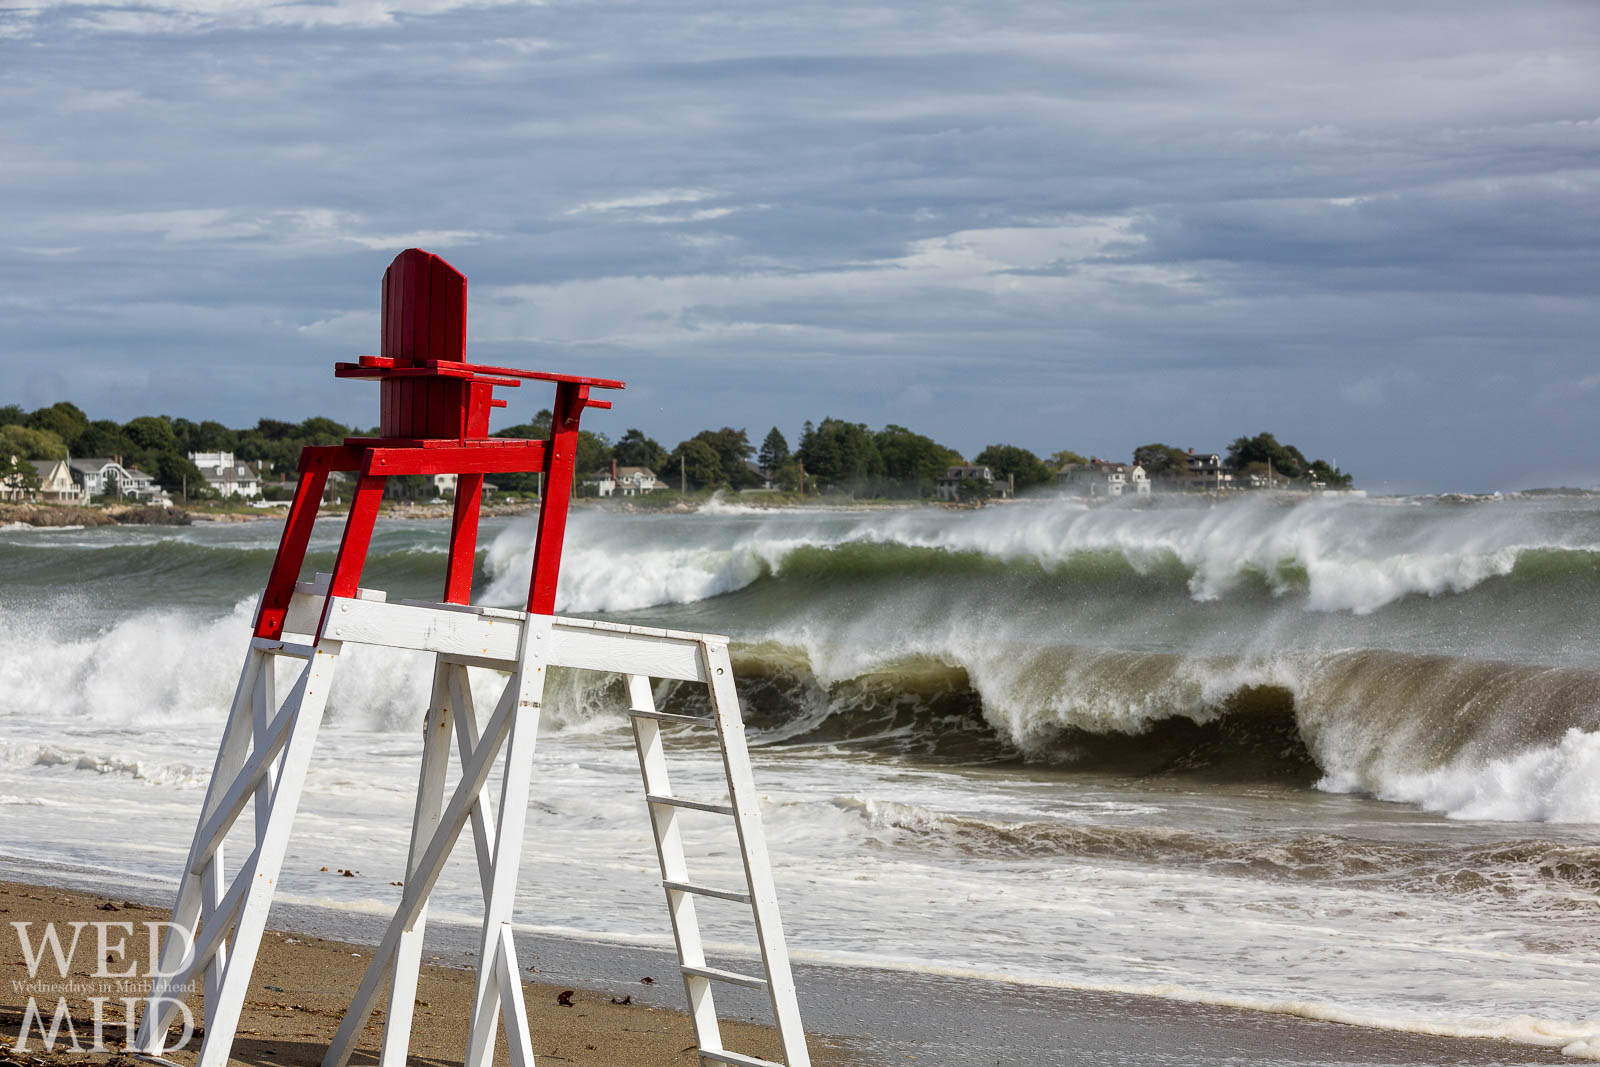 A lifeguard chair stands empty as huges waves come ashore meaning guards are off duty at Devereux Beach